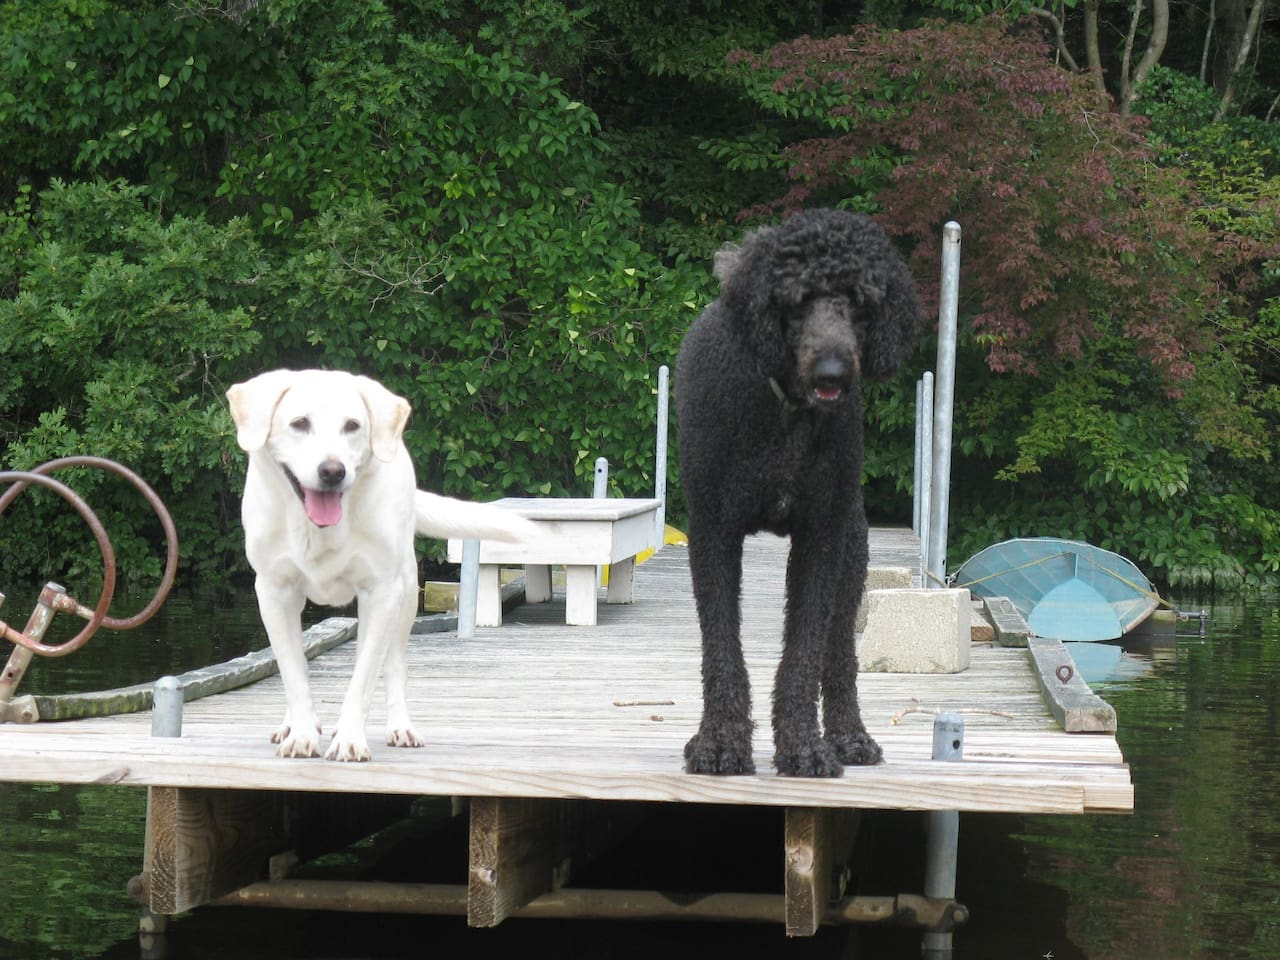 Our dogs on the dock at Moot Point Farm - rowing scull in background.